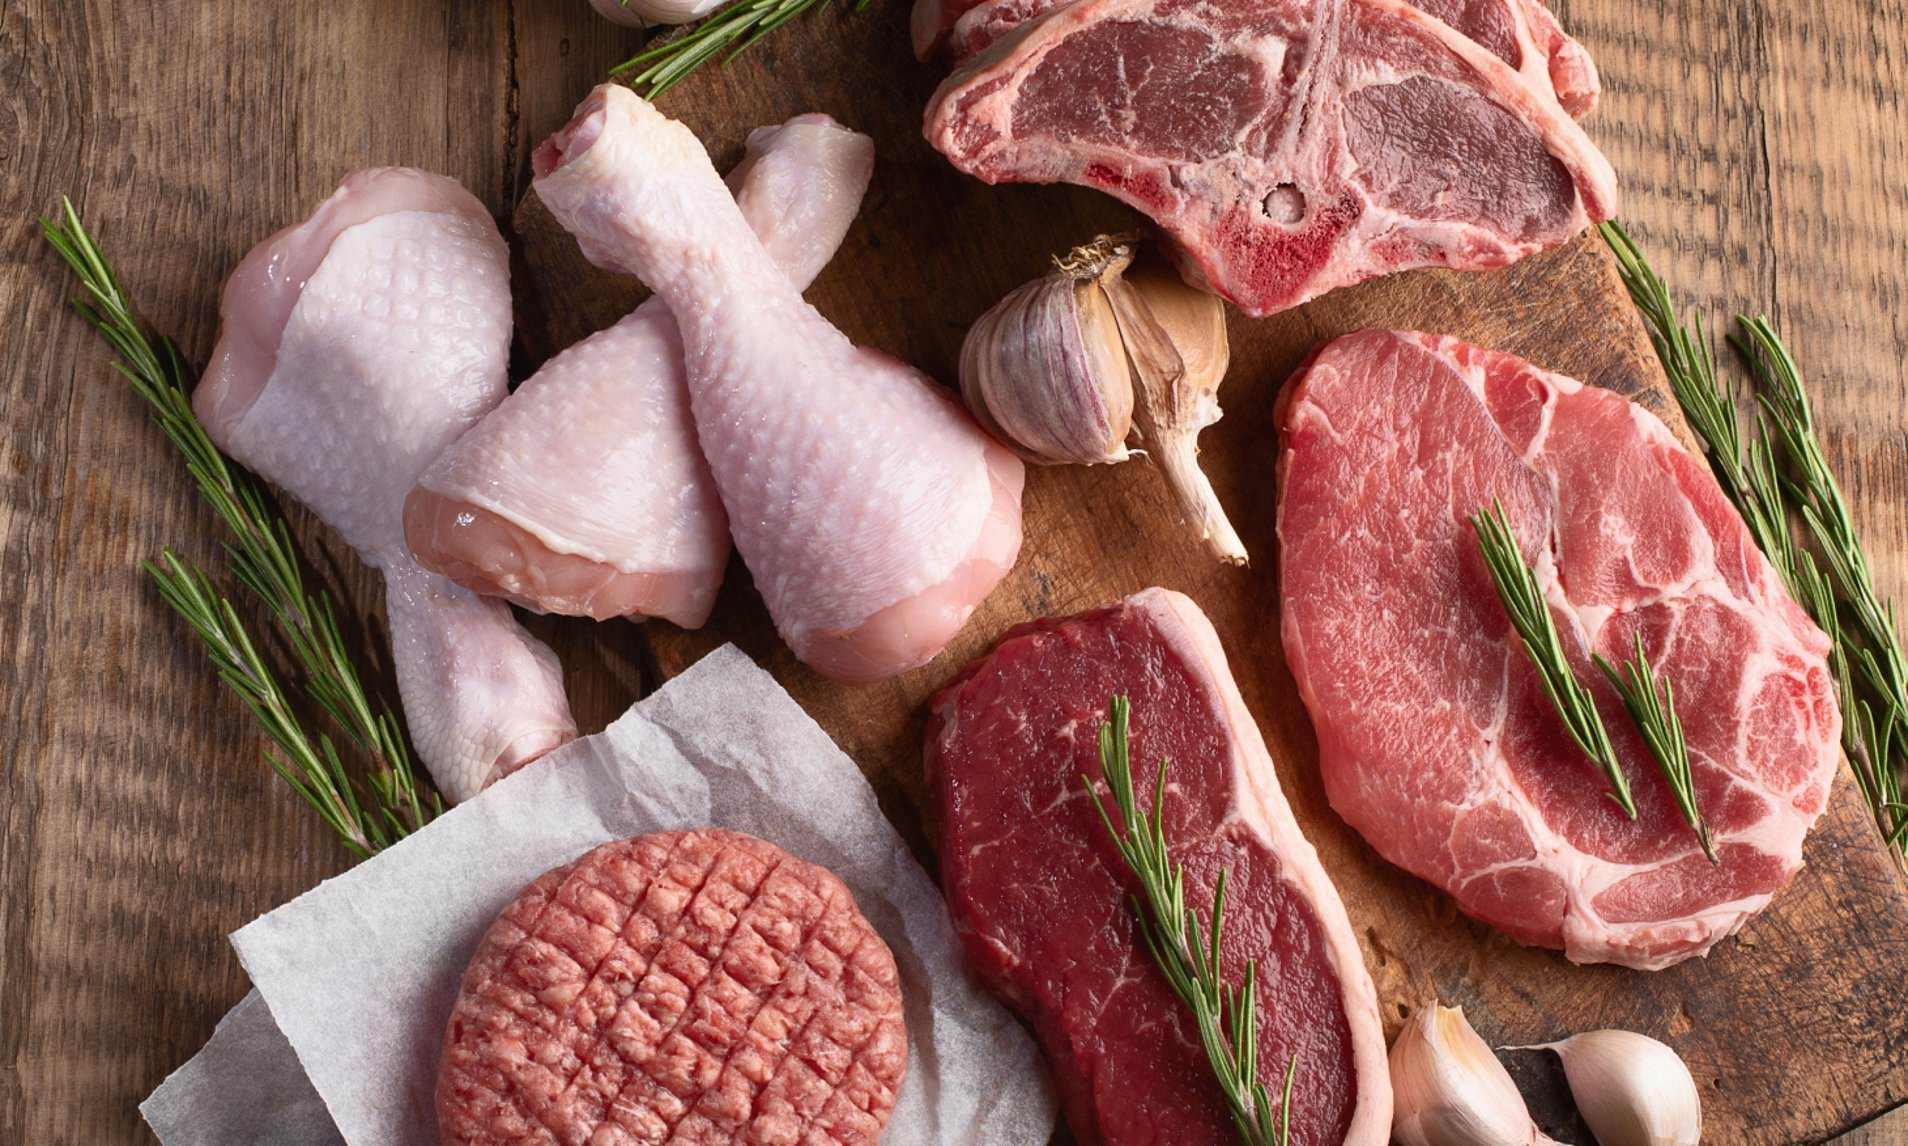 Your Favorite Choice Meats for Your Own Consumption or Your Business